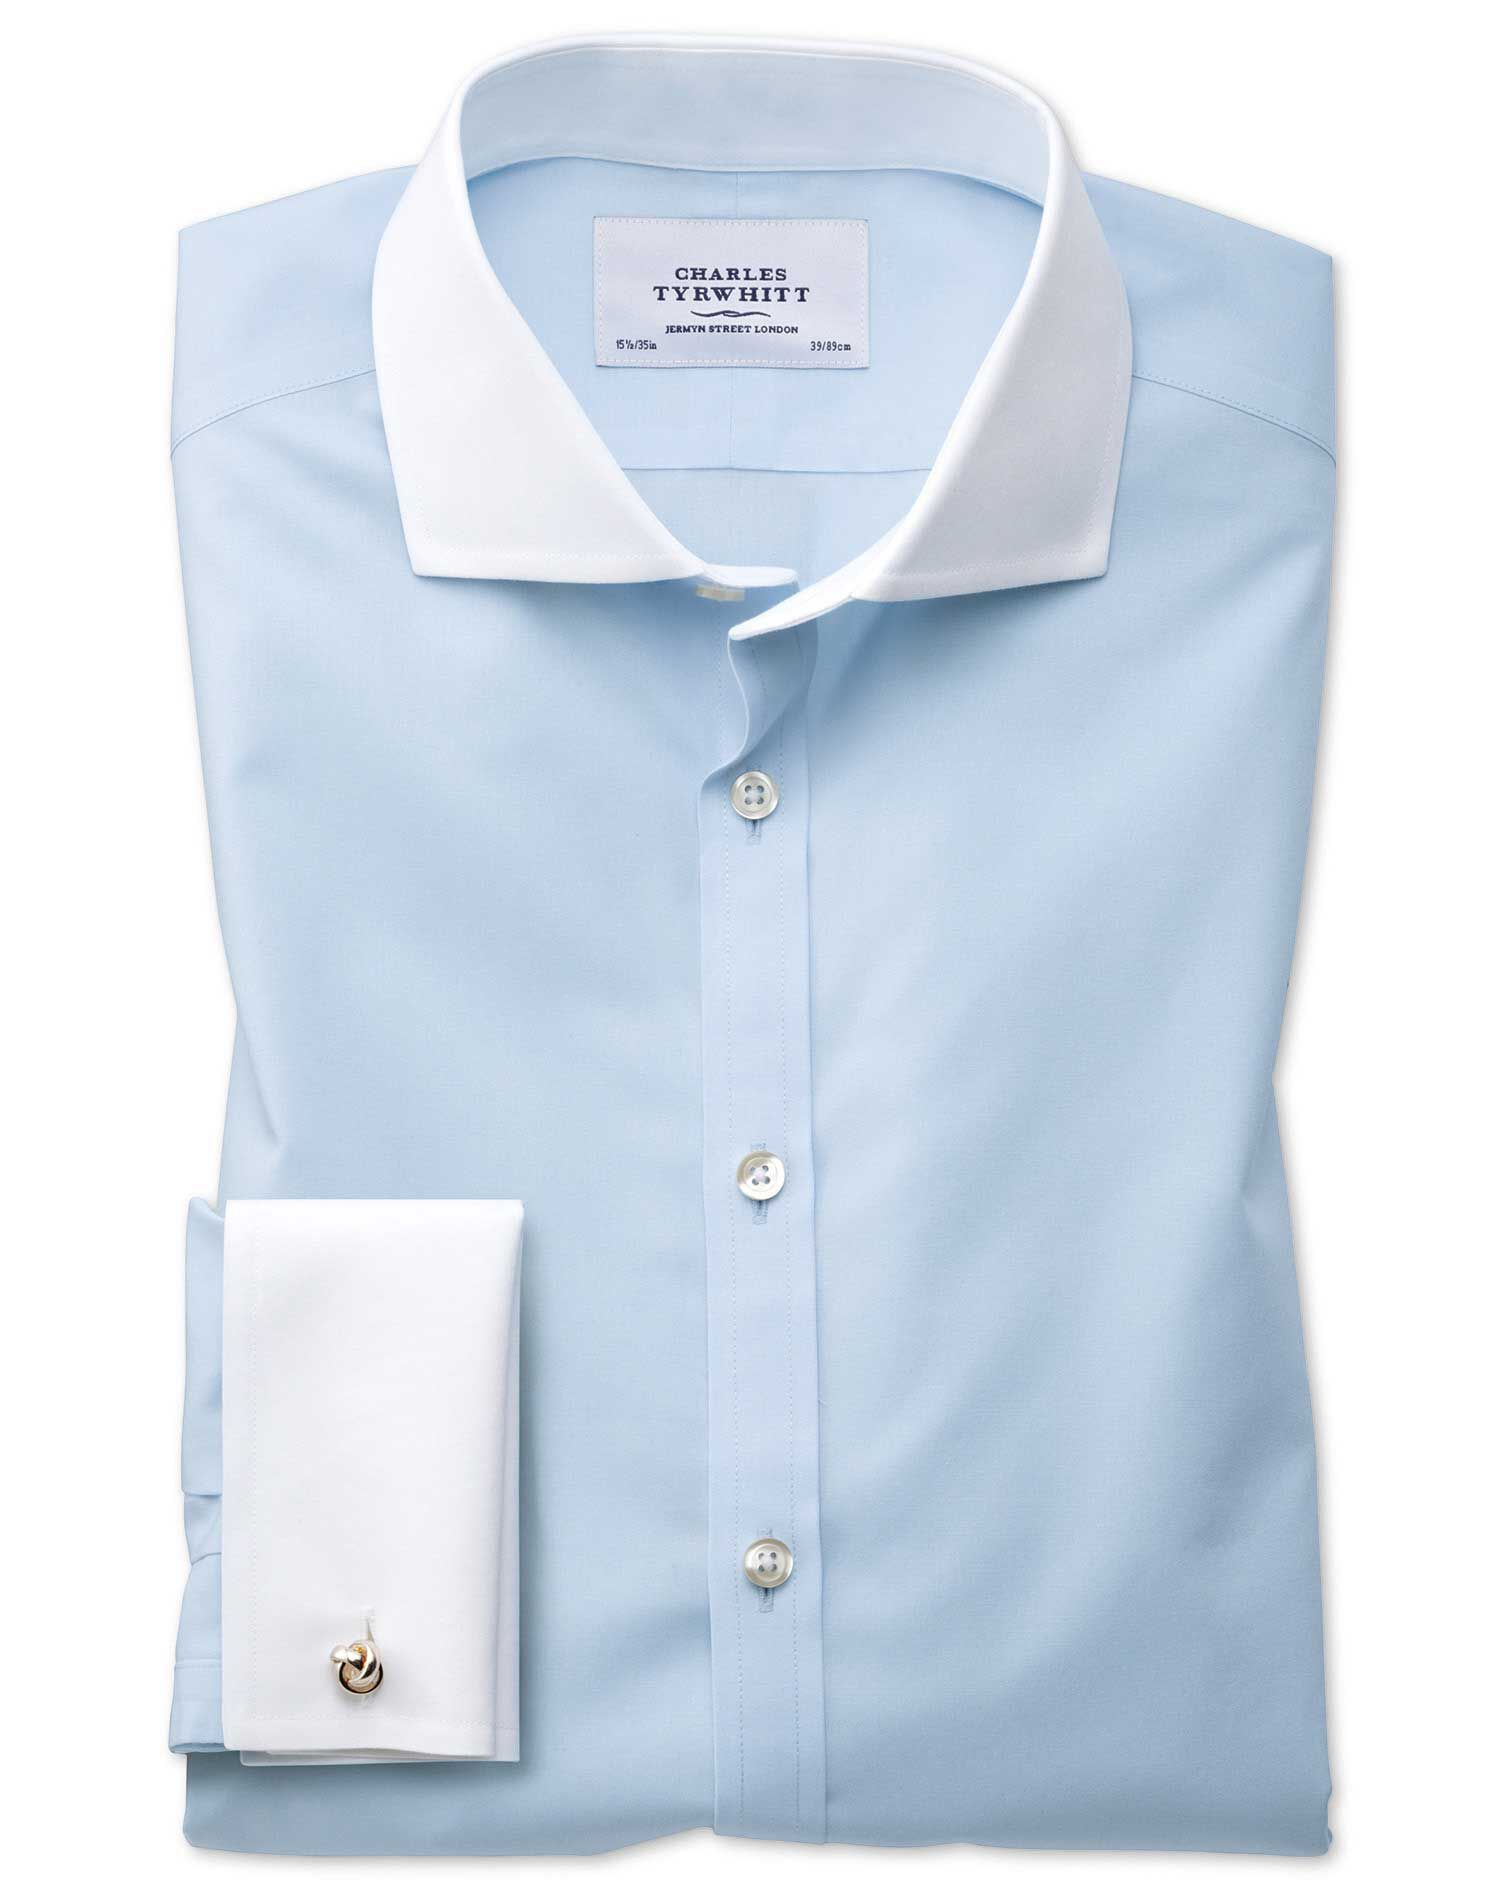 Extra Slim Fit Cutaway Non-Iron Winchester Sky Blue Cotton Formal Shirt Double Cuff Size 17/37 by Ch